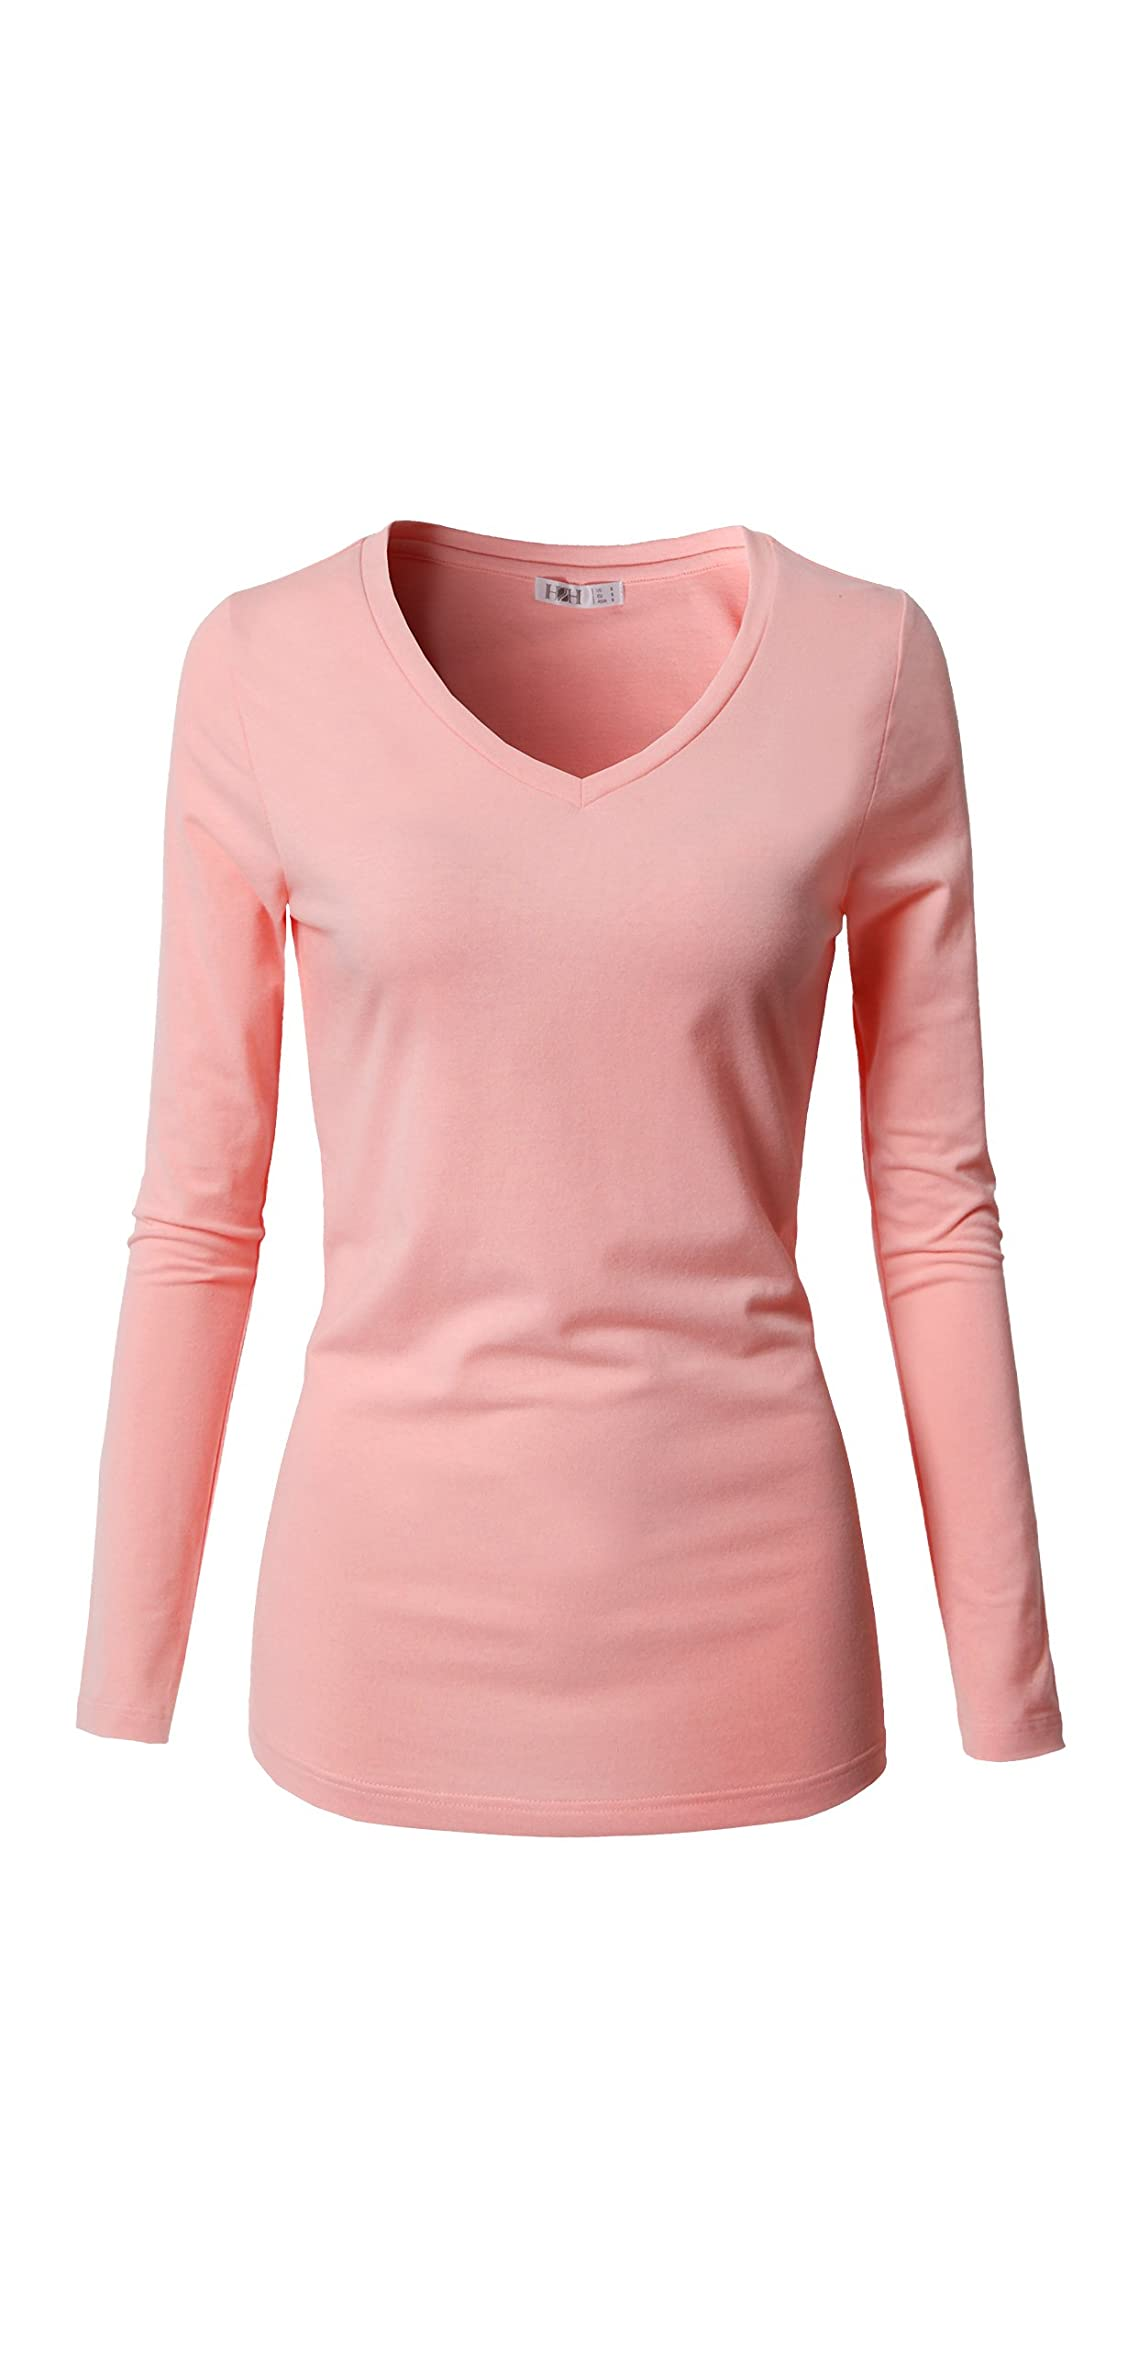 Womens Casual Slim Fit T-shirts Long Sleeve V Neck/crew Neck